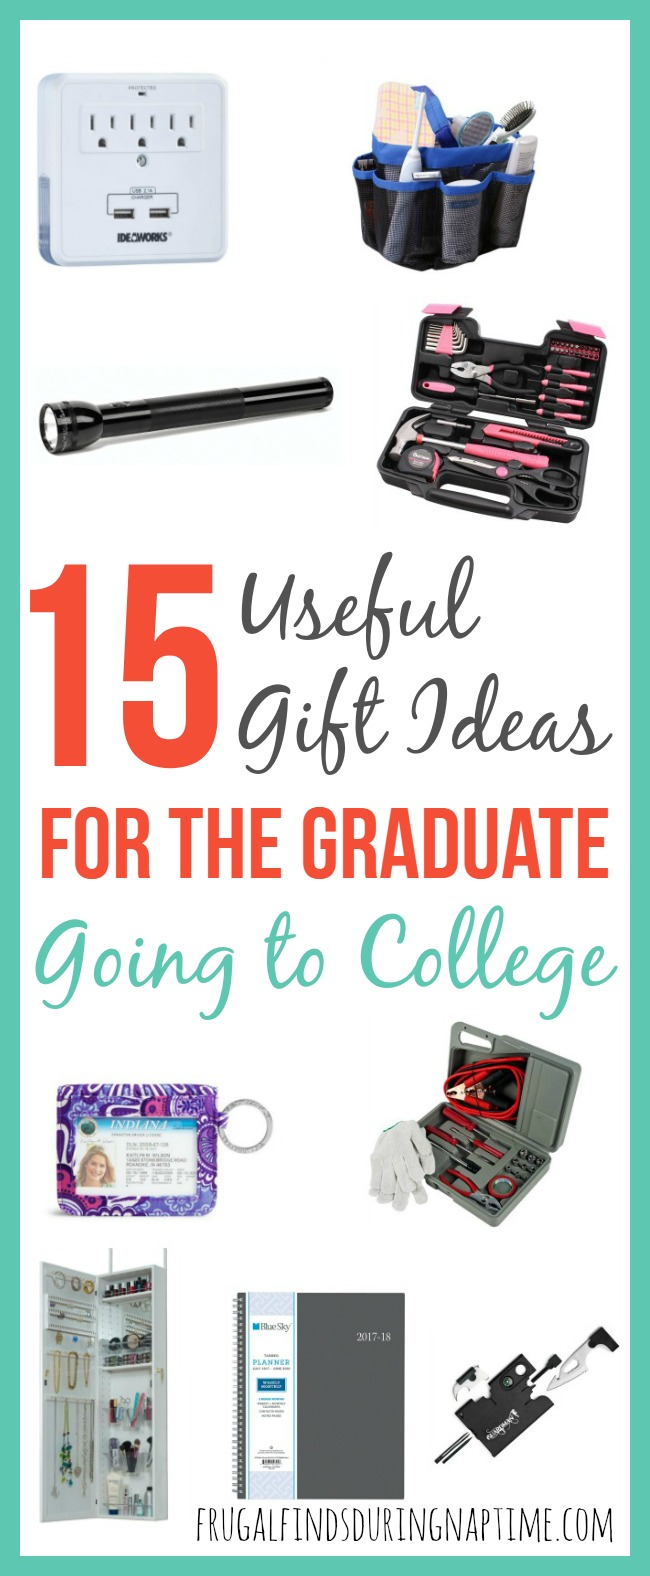 Looking for a gift for a graduate that won't collect dust and will actually be used? Check out this list of useful gift ideas for the graduate going to college.